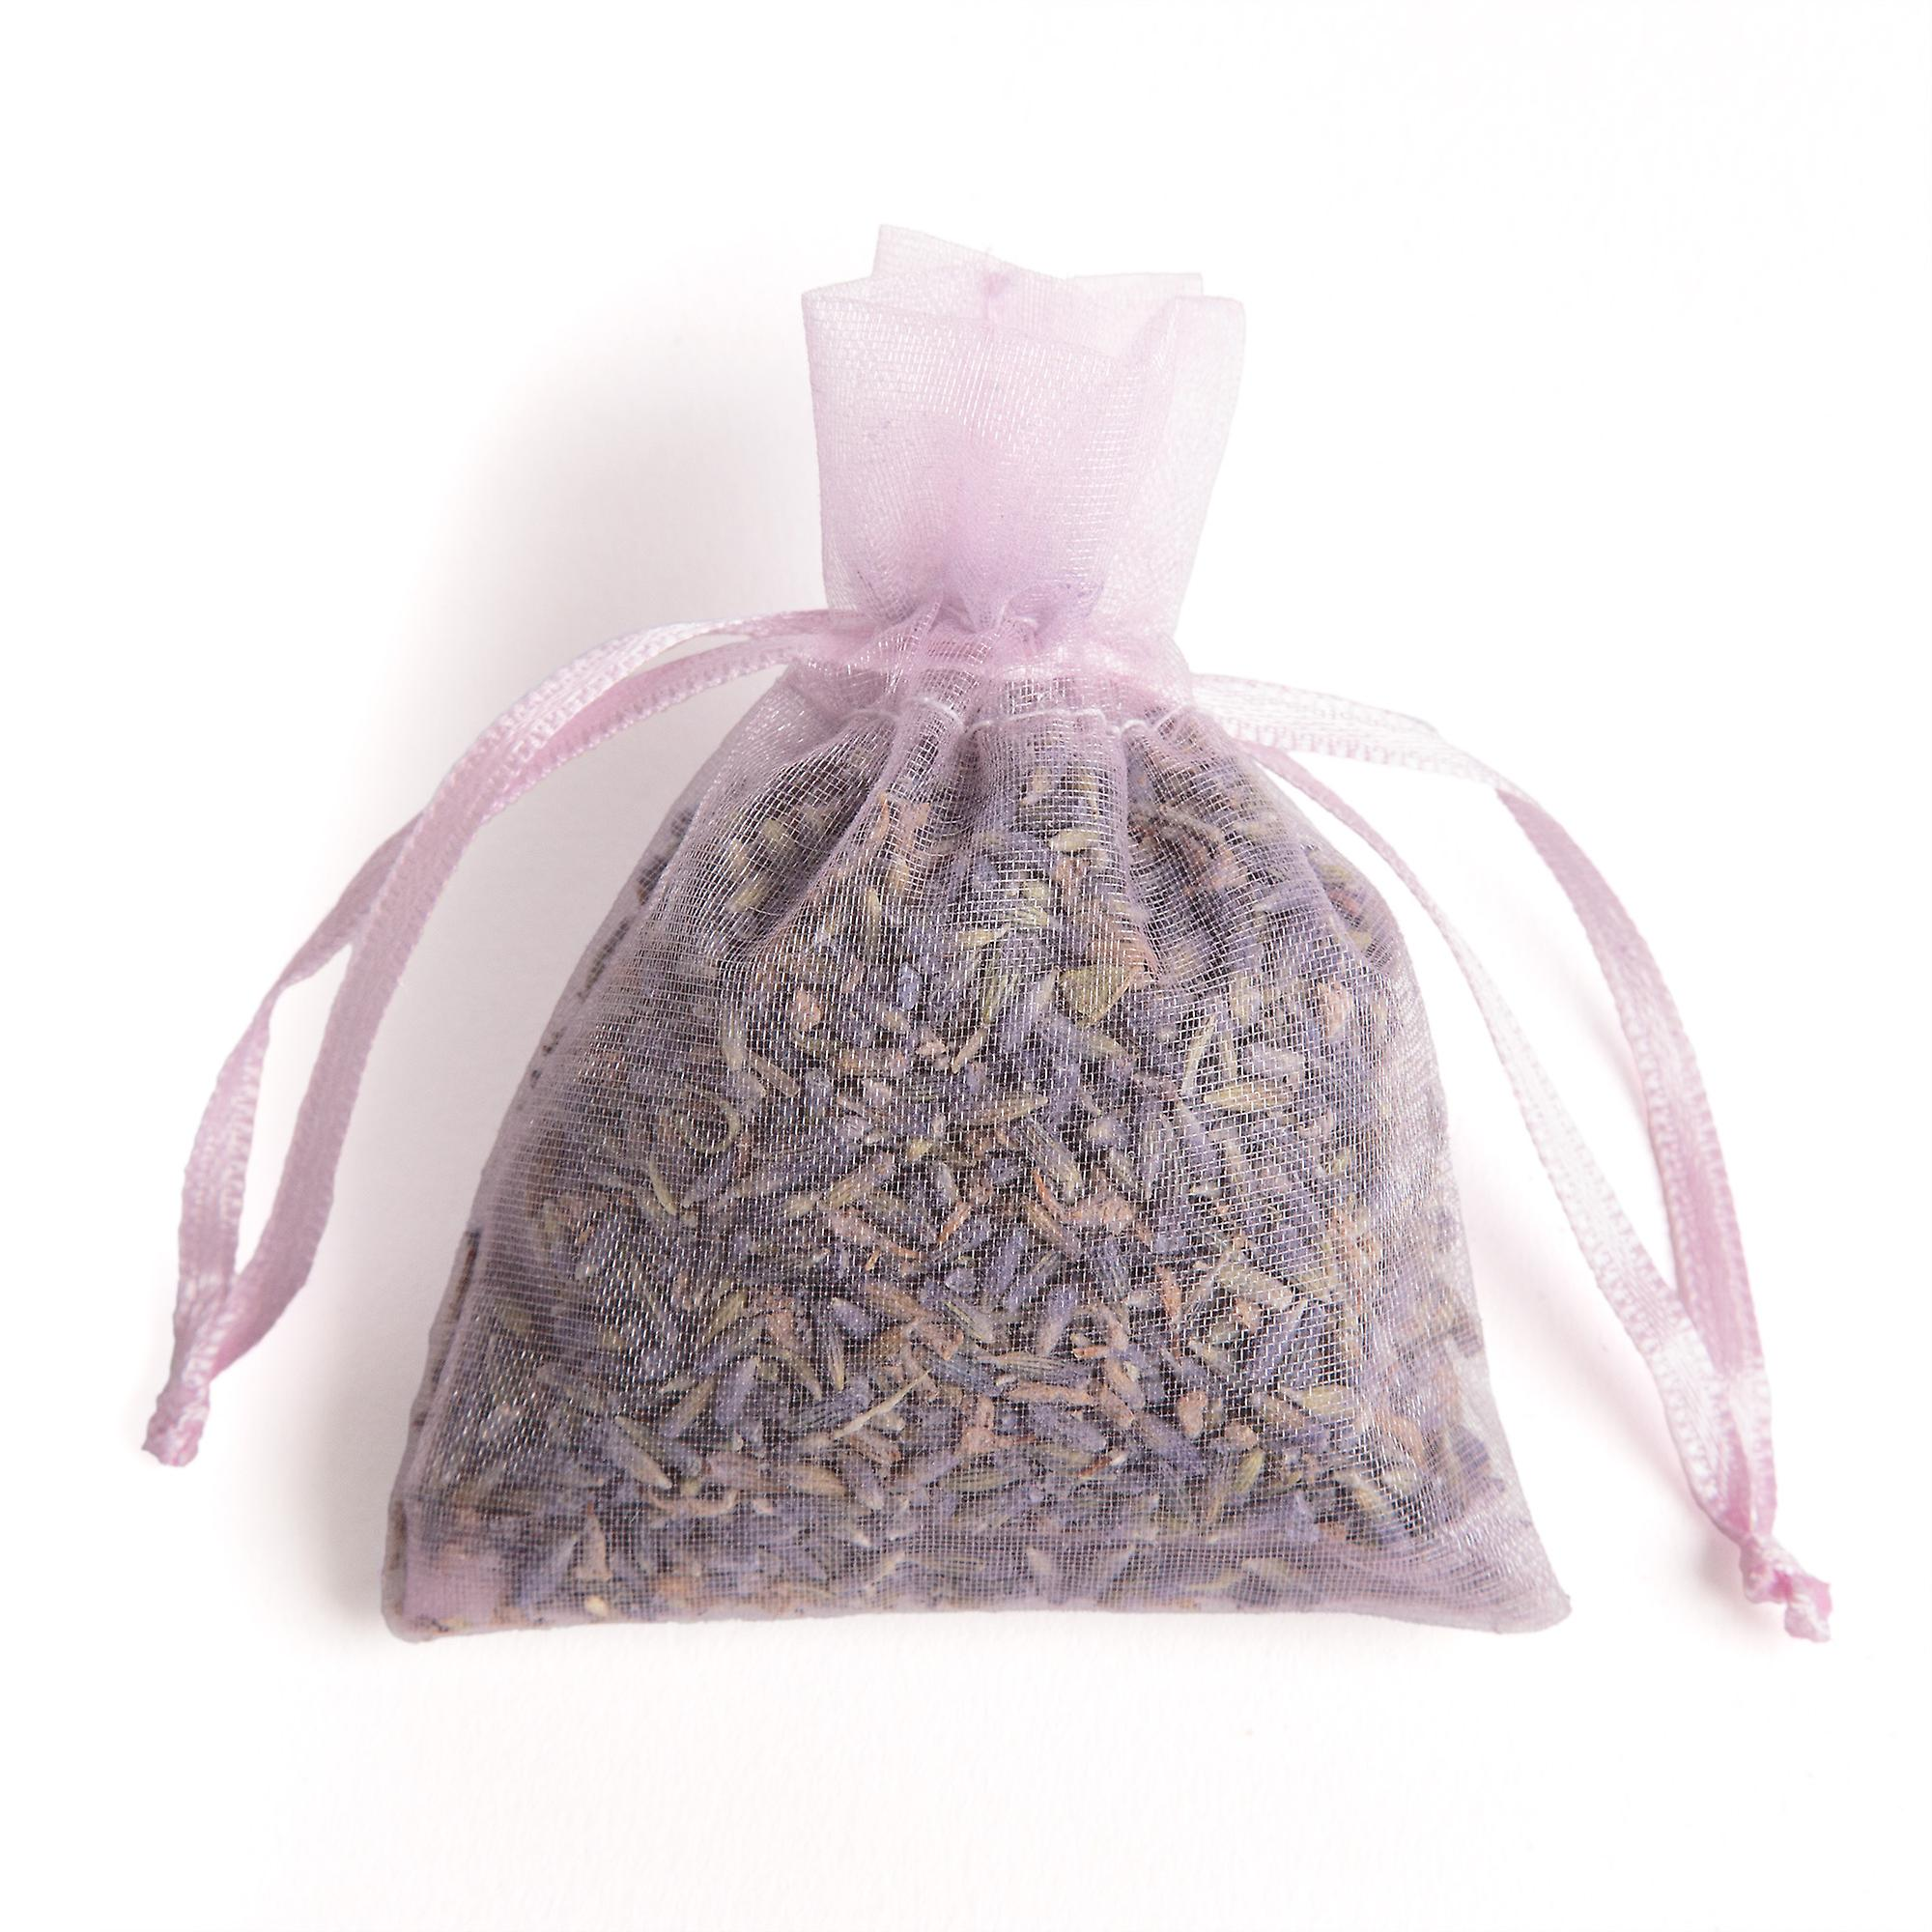 12 lavender bags of lavender bags lilac dried lavender room fragrance with lavender flowers as moth protection and car scent